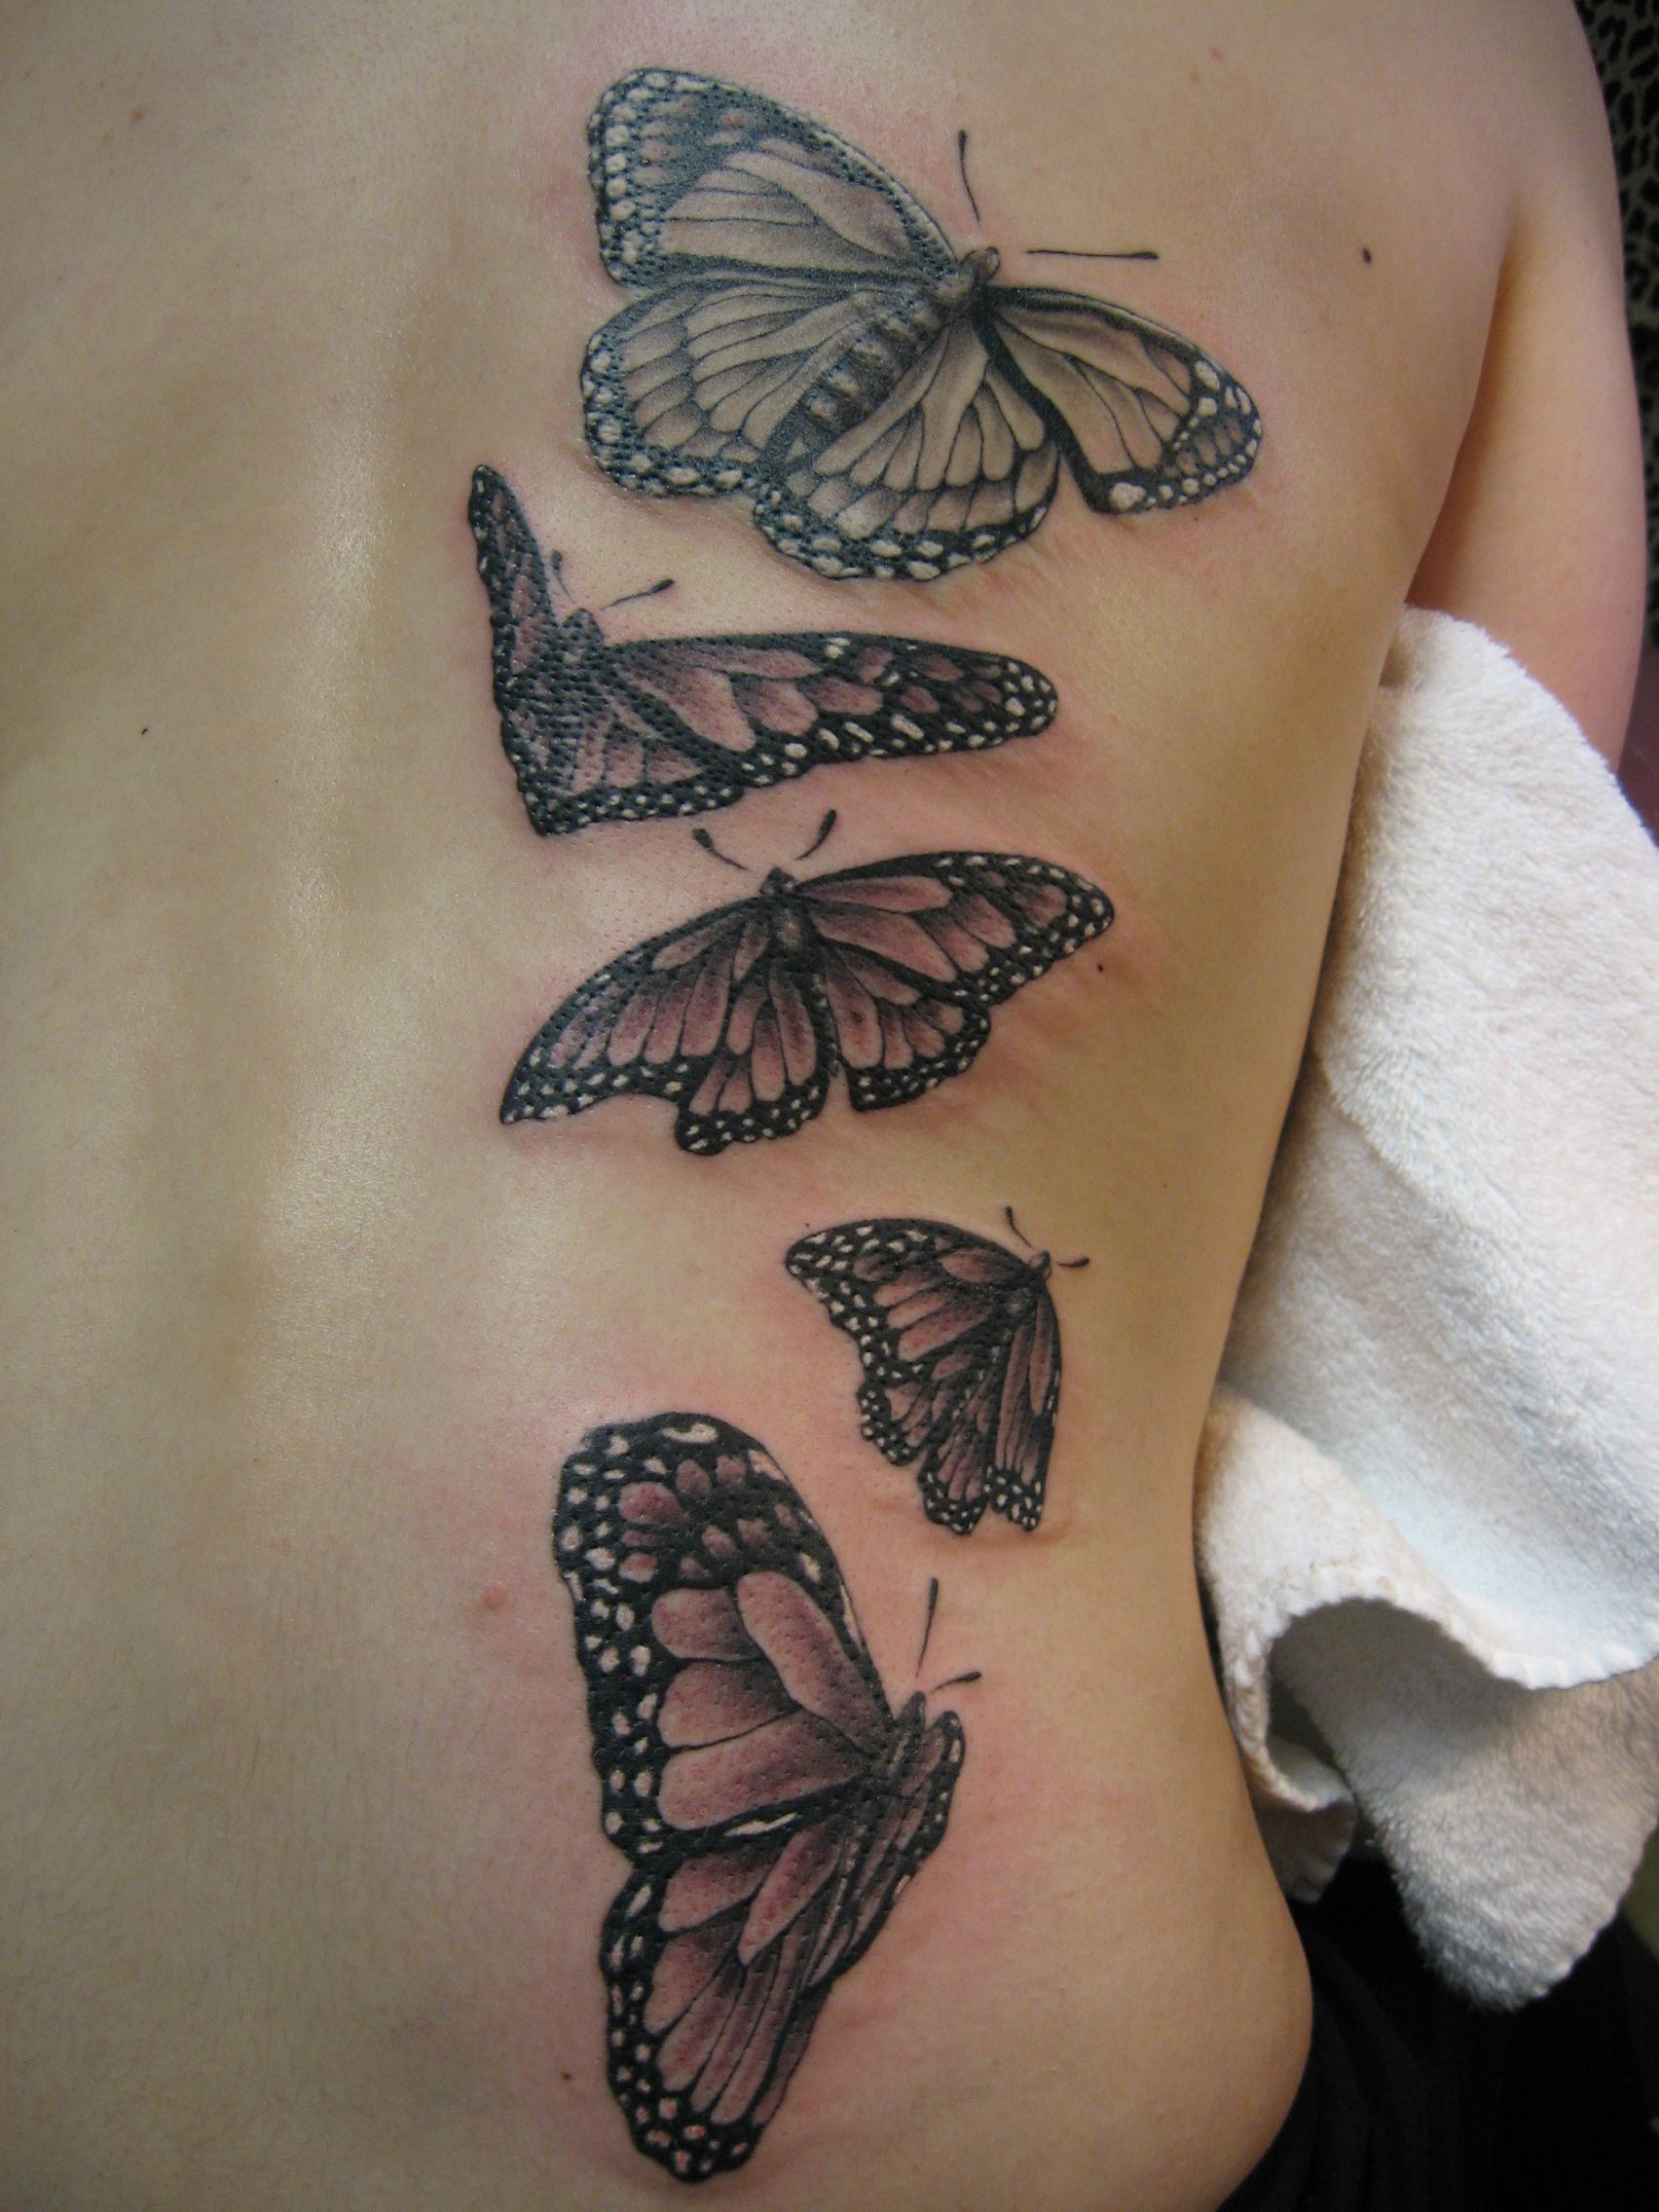 Black and gray monarch butterflies by russell fortier at